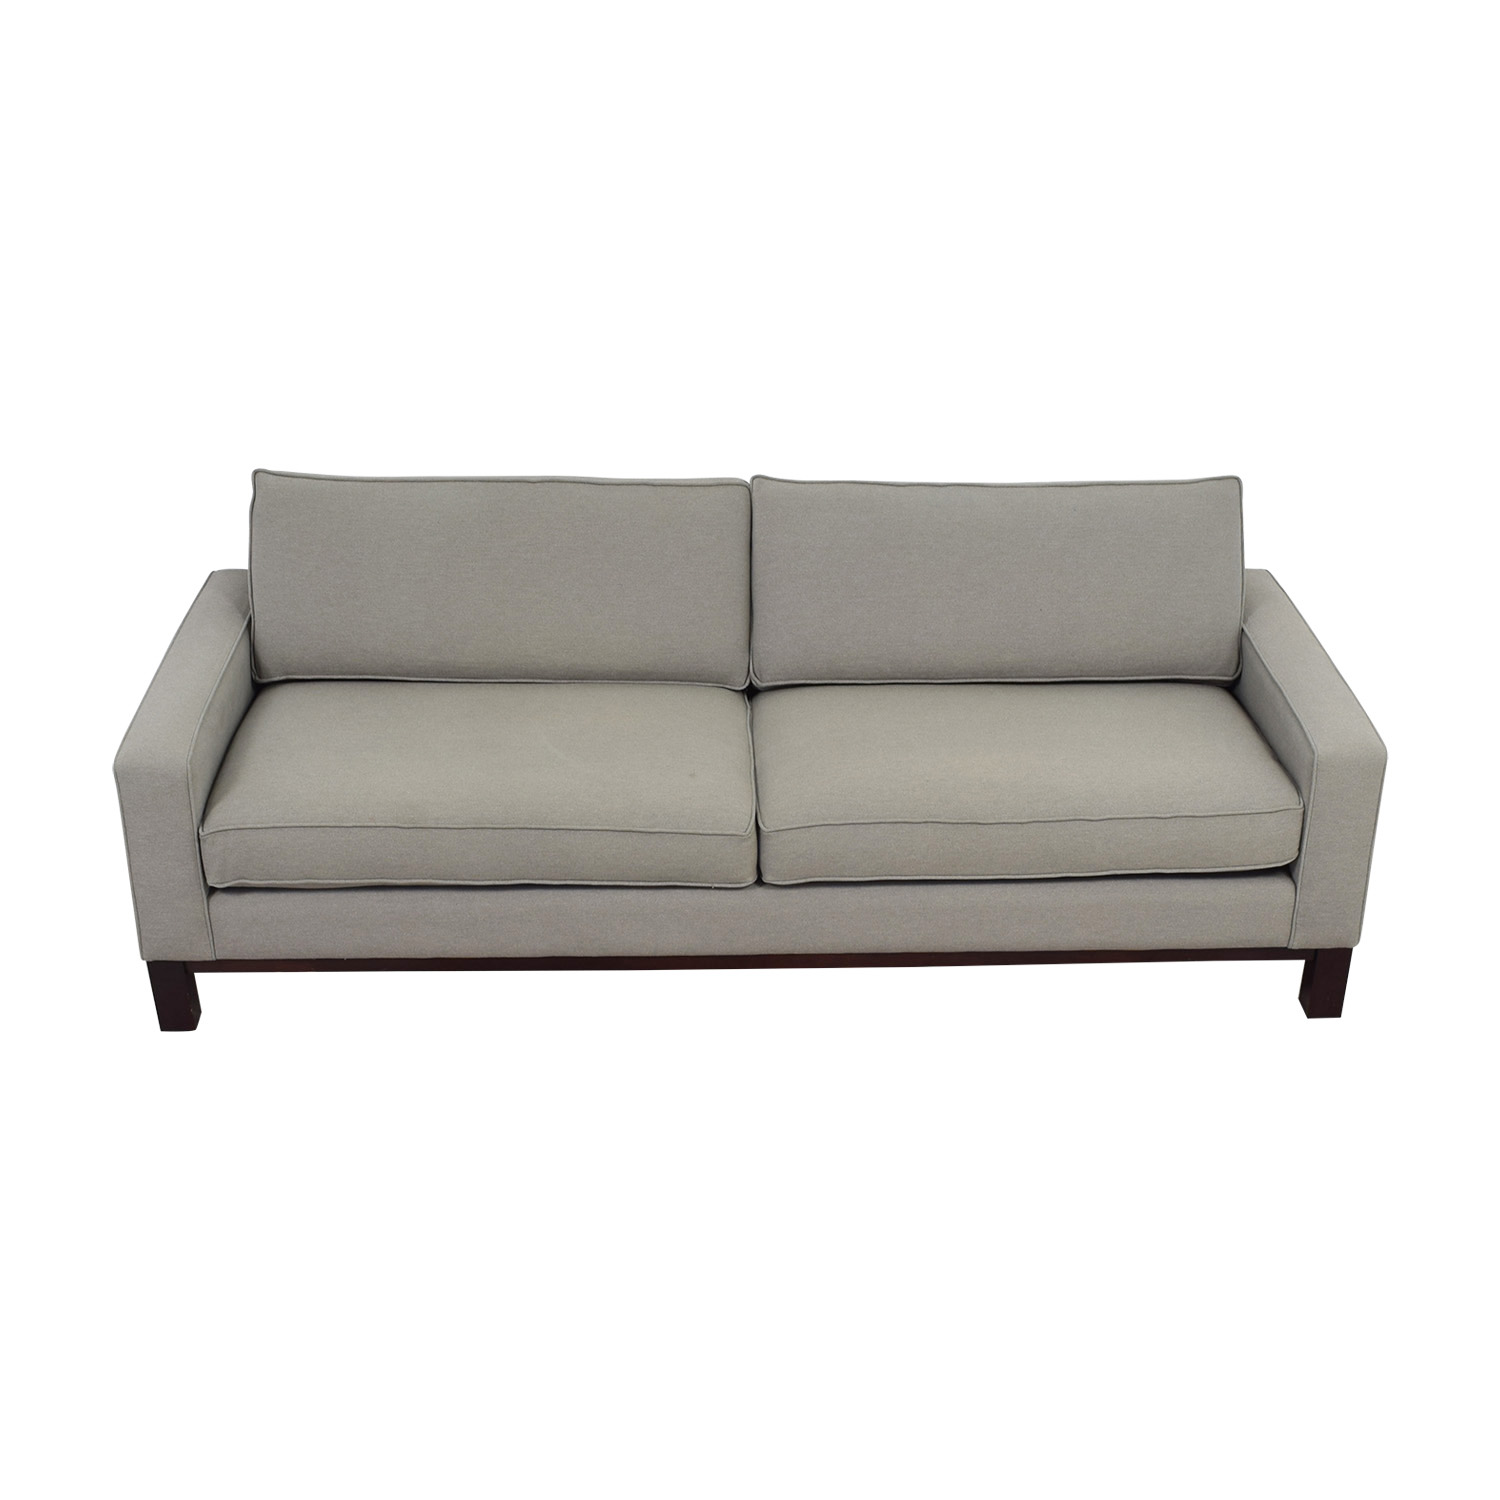 Room & Board Grey Two-Cushion Sofa sale